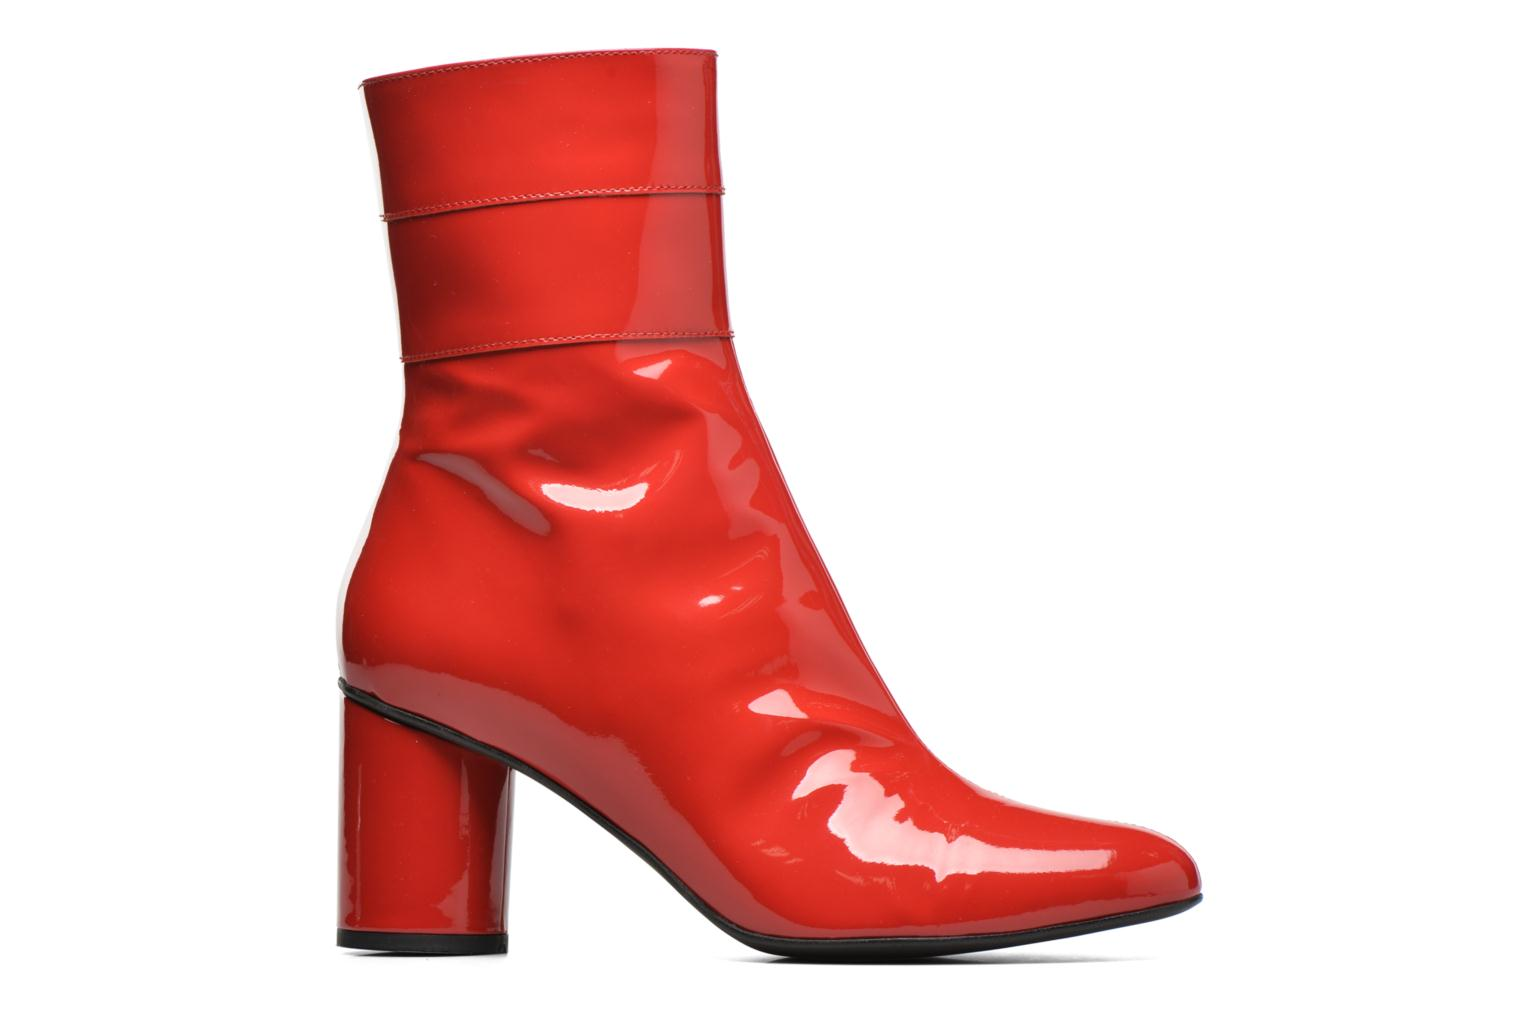 80's Made SARENZA Girl Marques femme Chaussure Disco by femme aWPPUqf